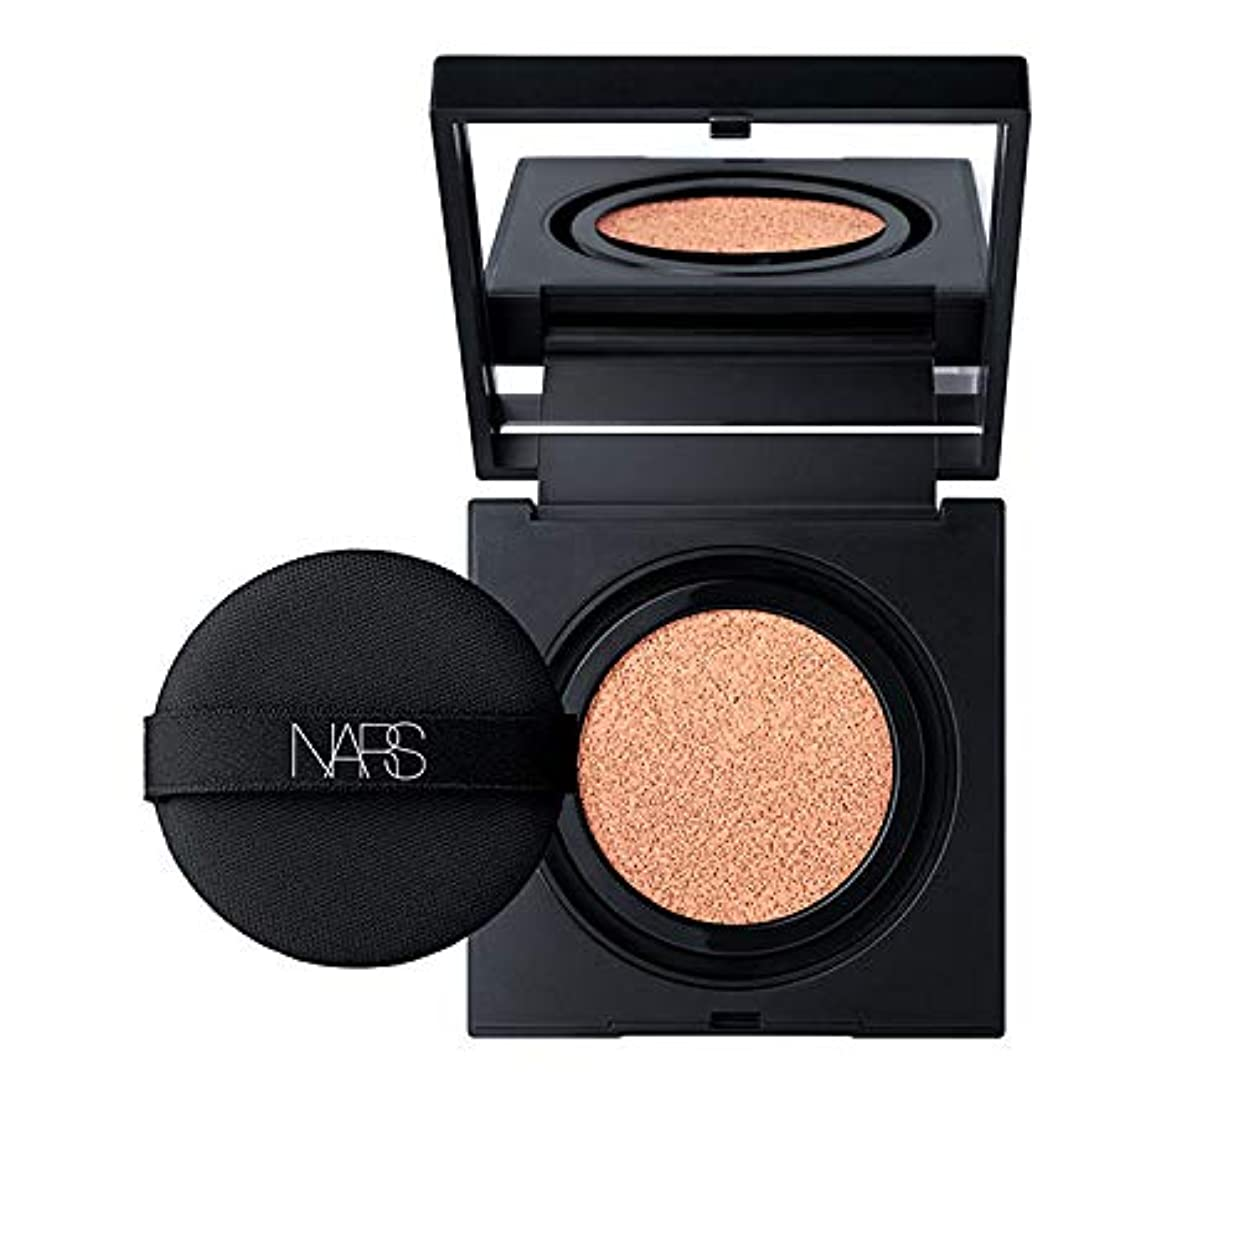 悩み本会議スプレーNars(ナーズ) Natural Radiant Longwear Cushion Foundation 12g # Seoul